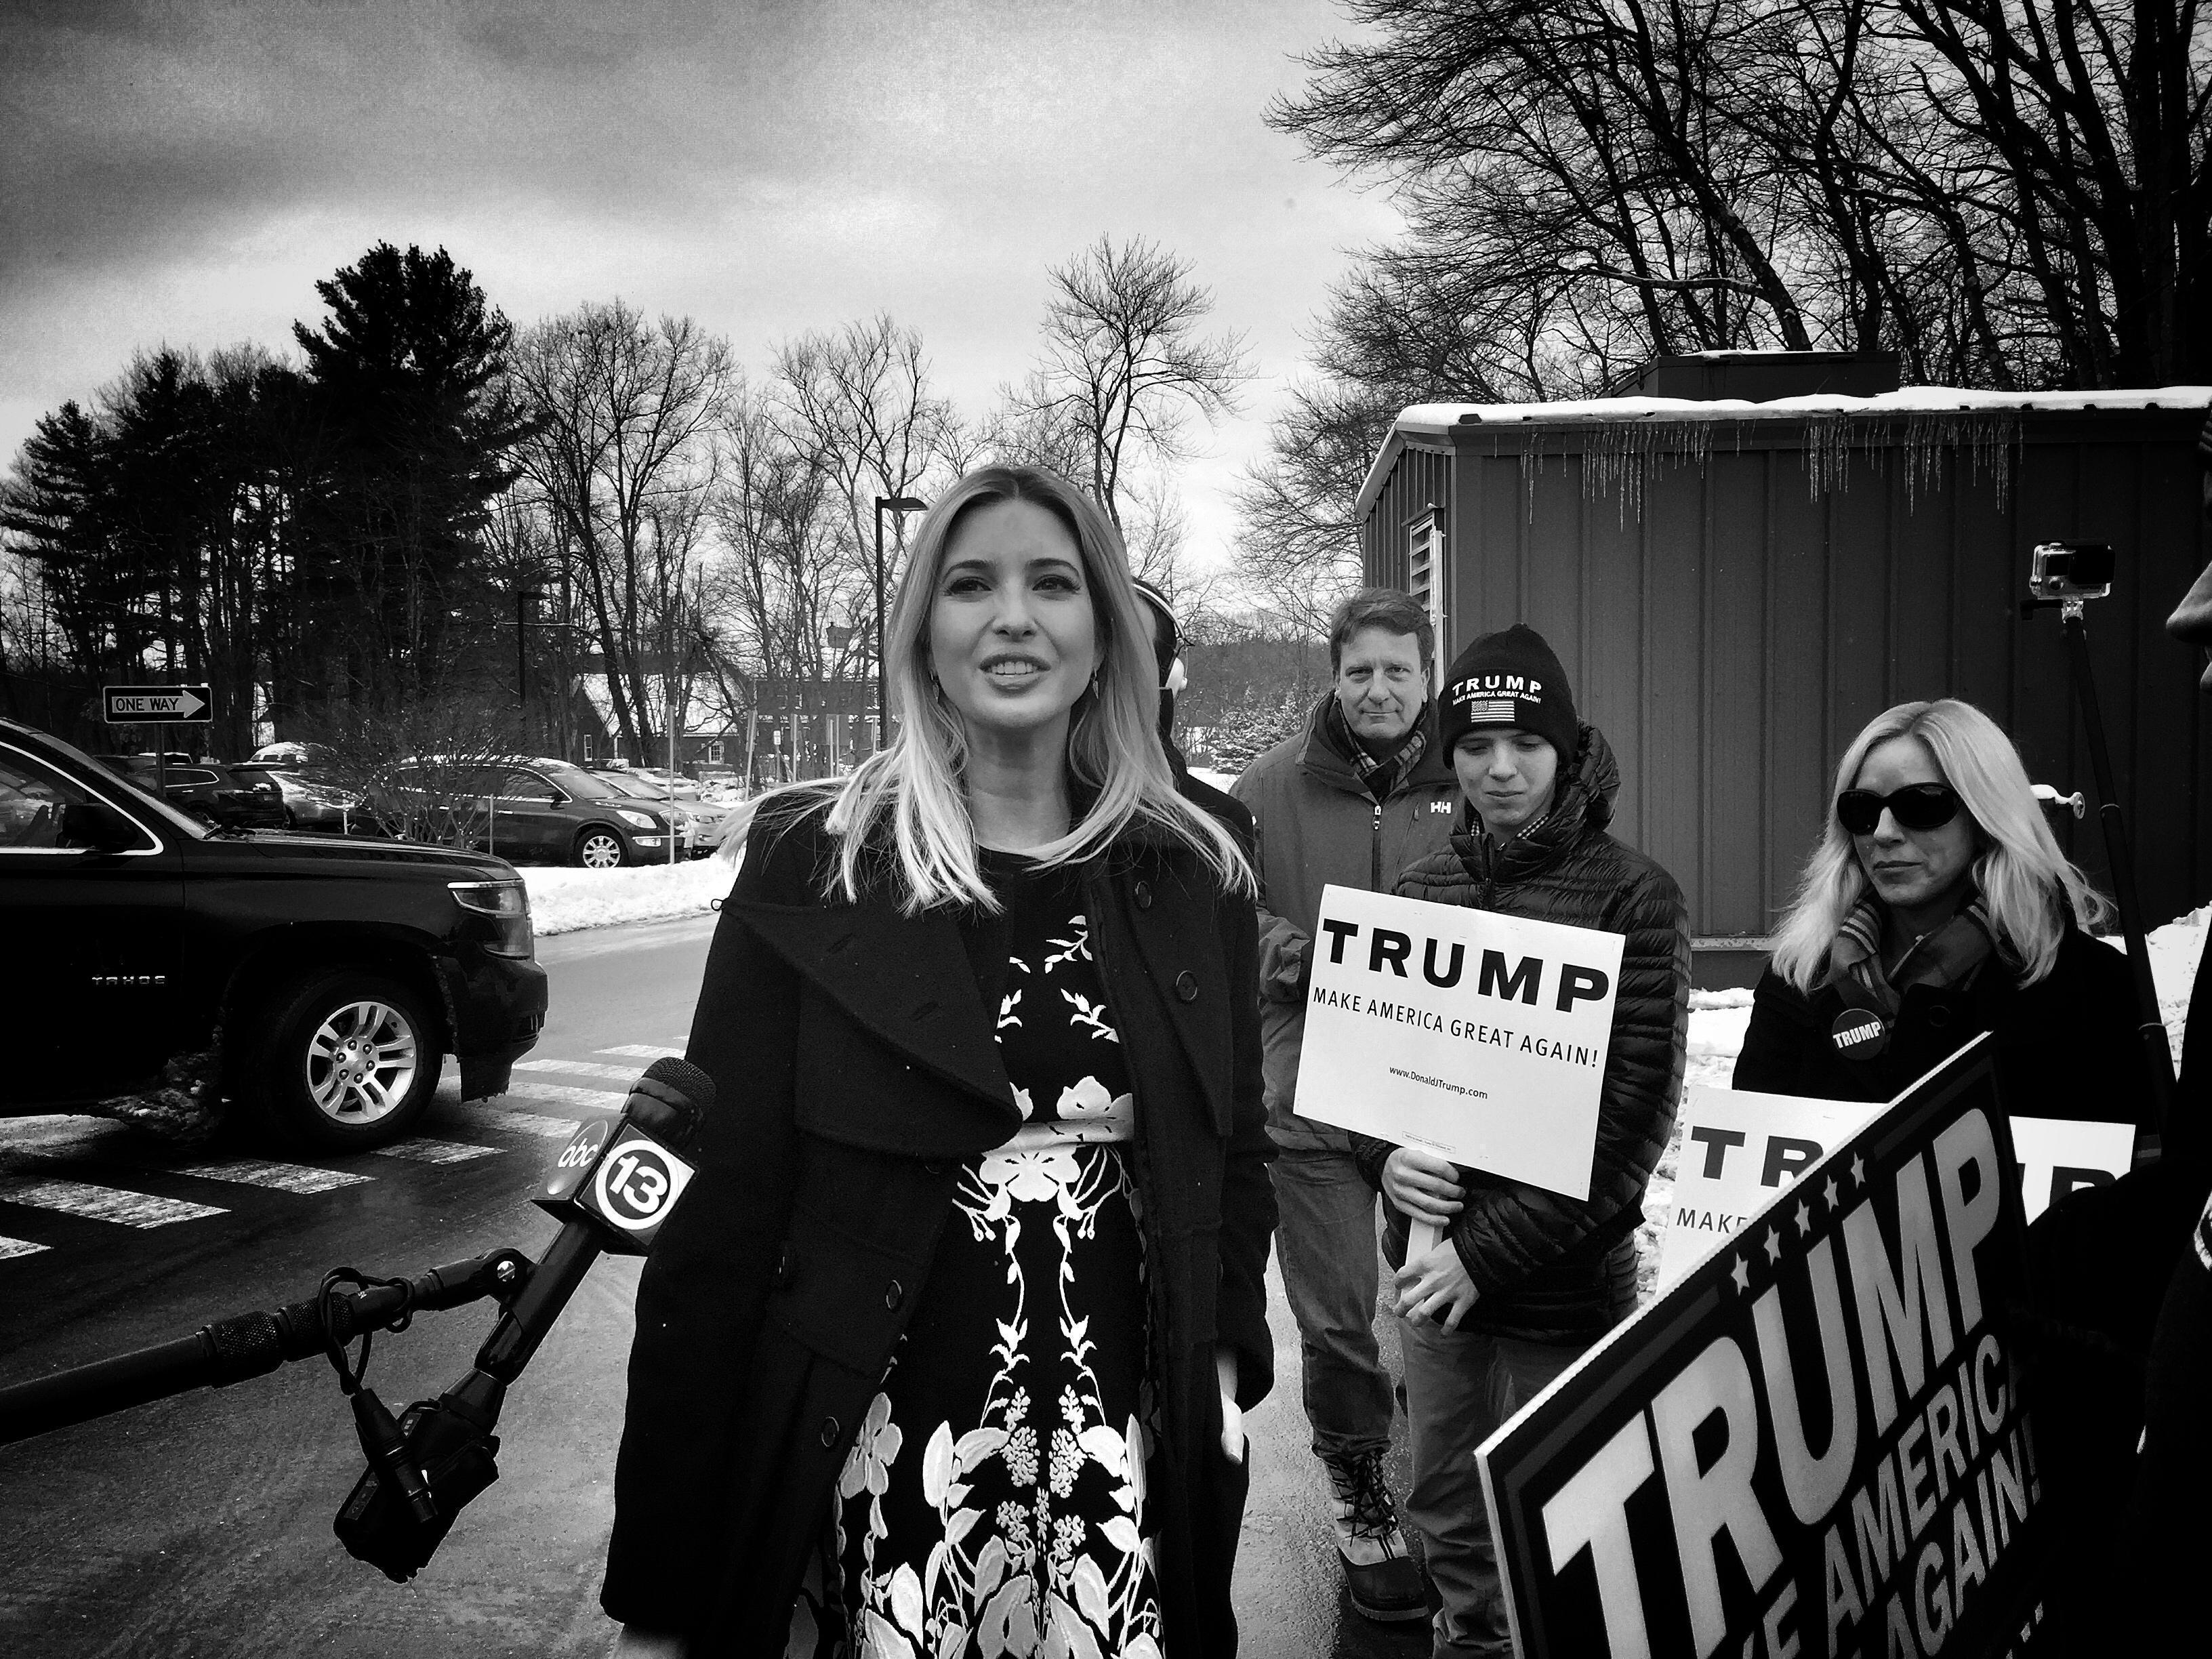 Ivanka, with her bump, stumps for Papa Trump